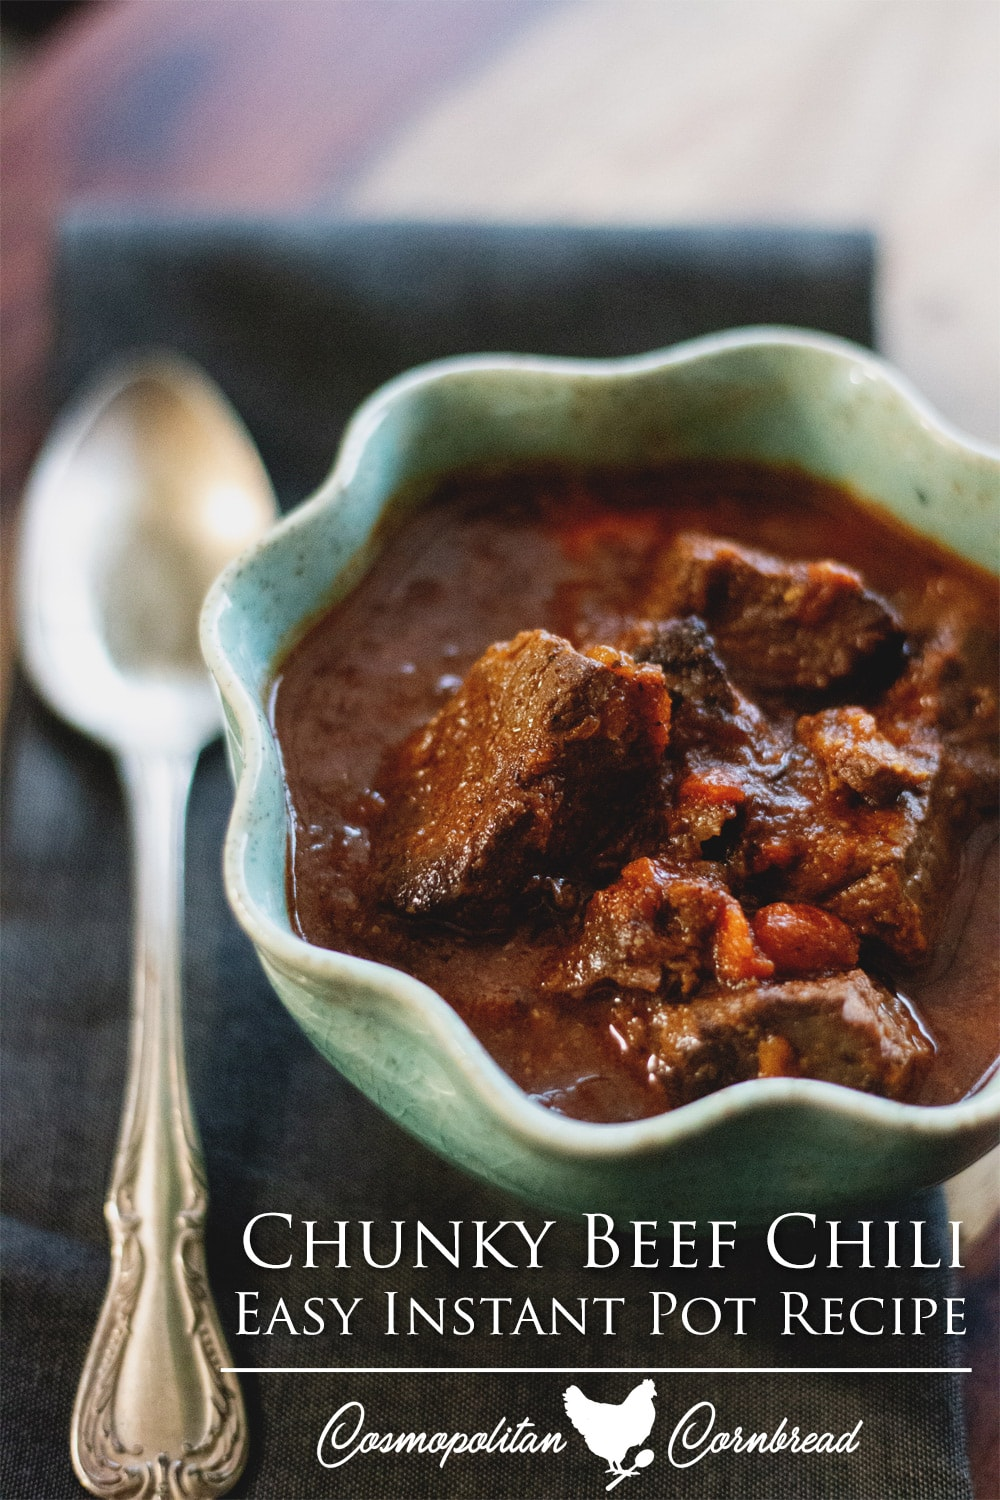 Chunky Beef Chili in the Instant Pot - Hearty beef chili with a rich, smokey flavor.